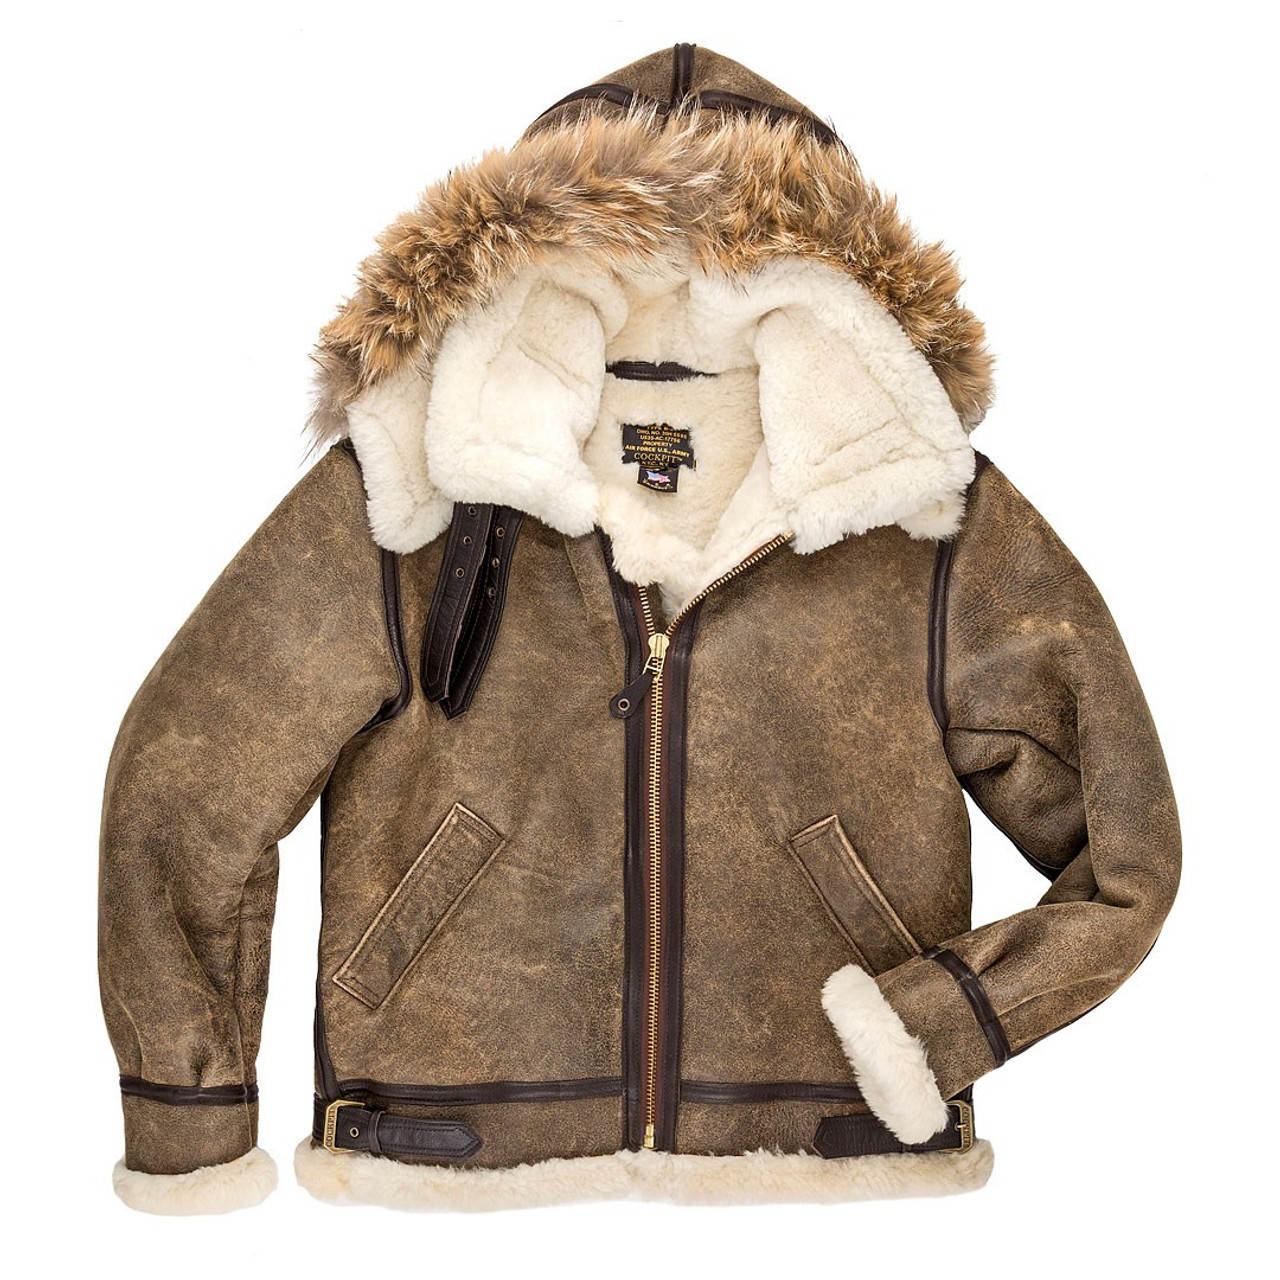 Cockpit USA B-3 Hooded Sheepskin Bomber Jacket - Bradshaw Forbes